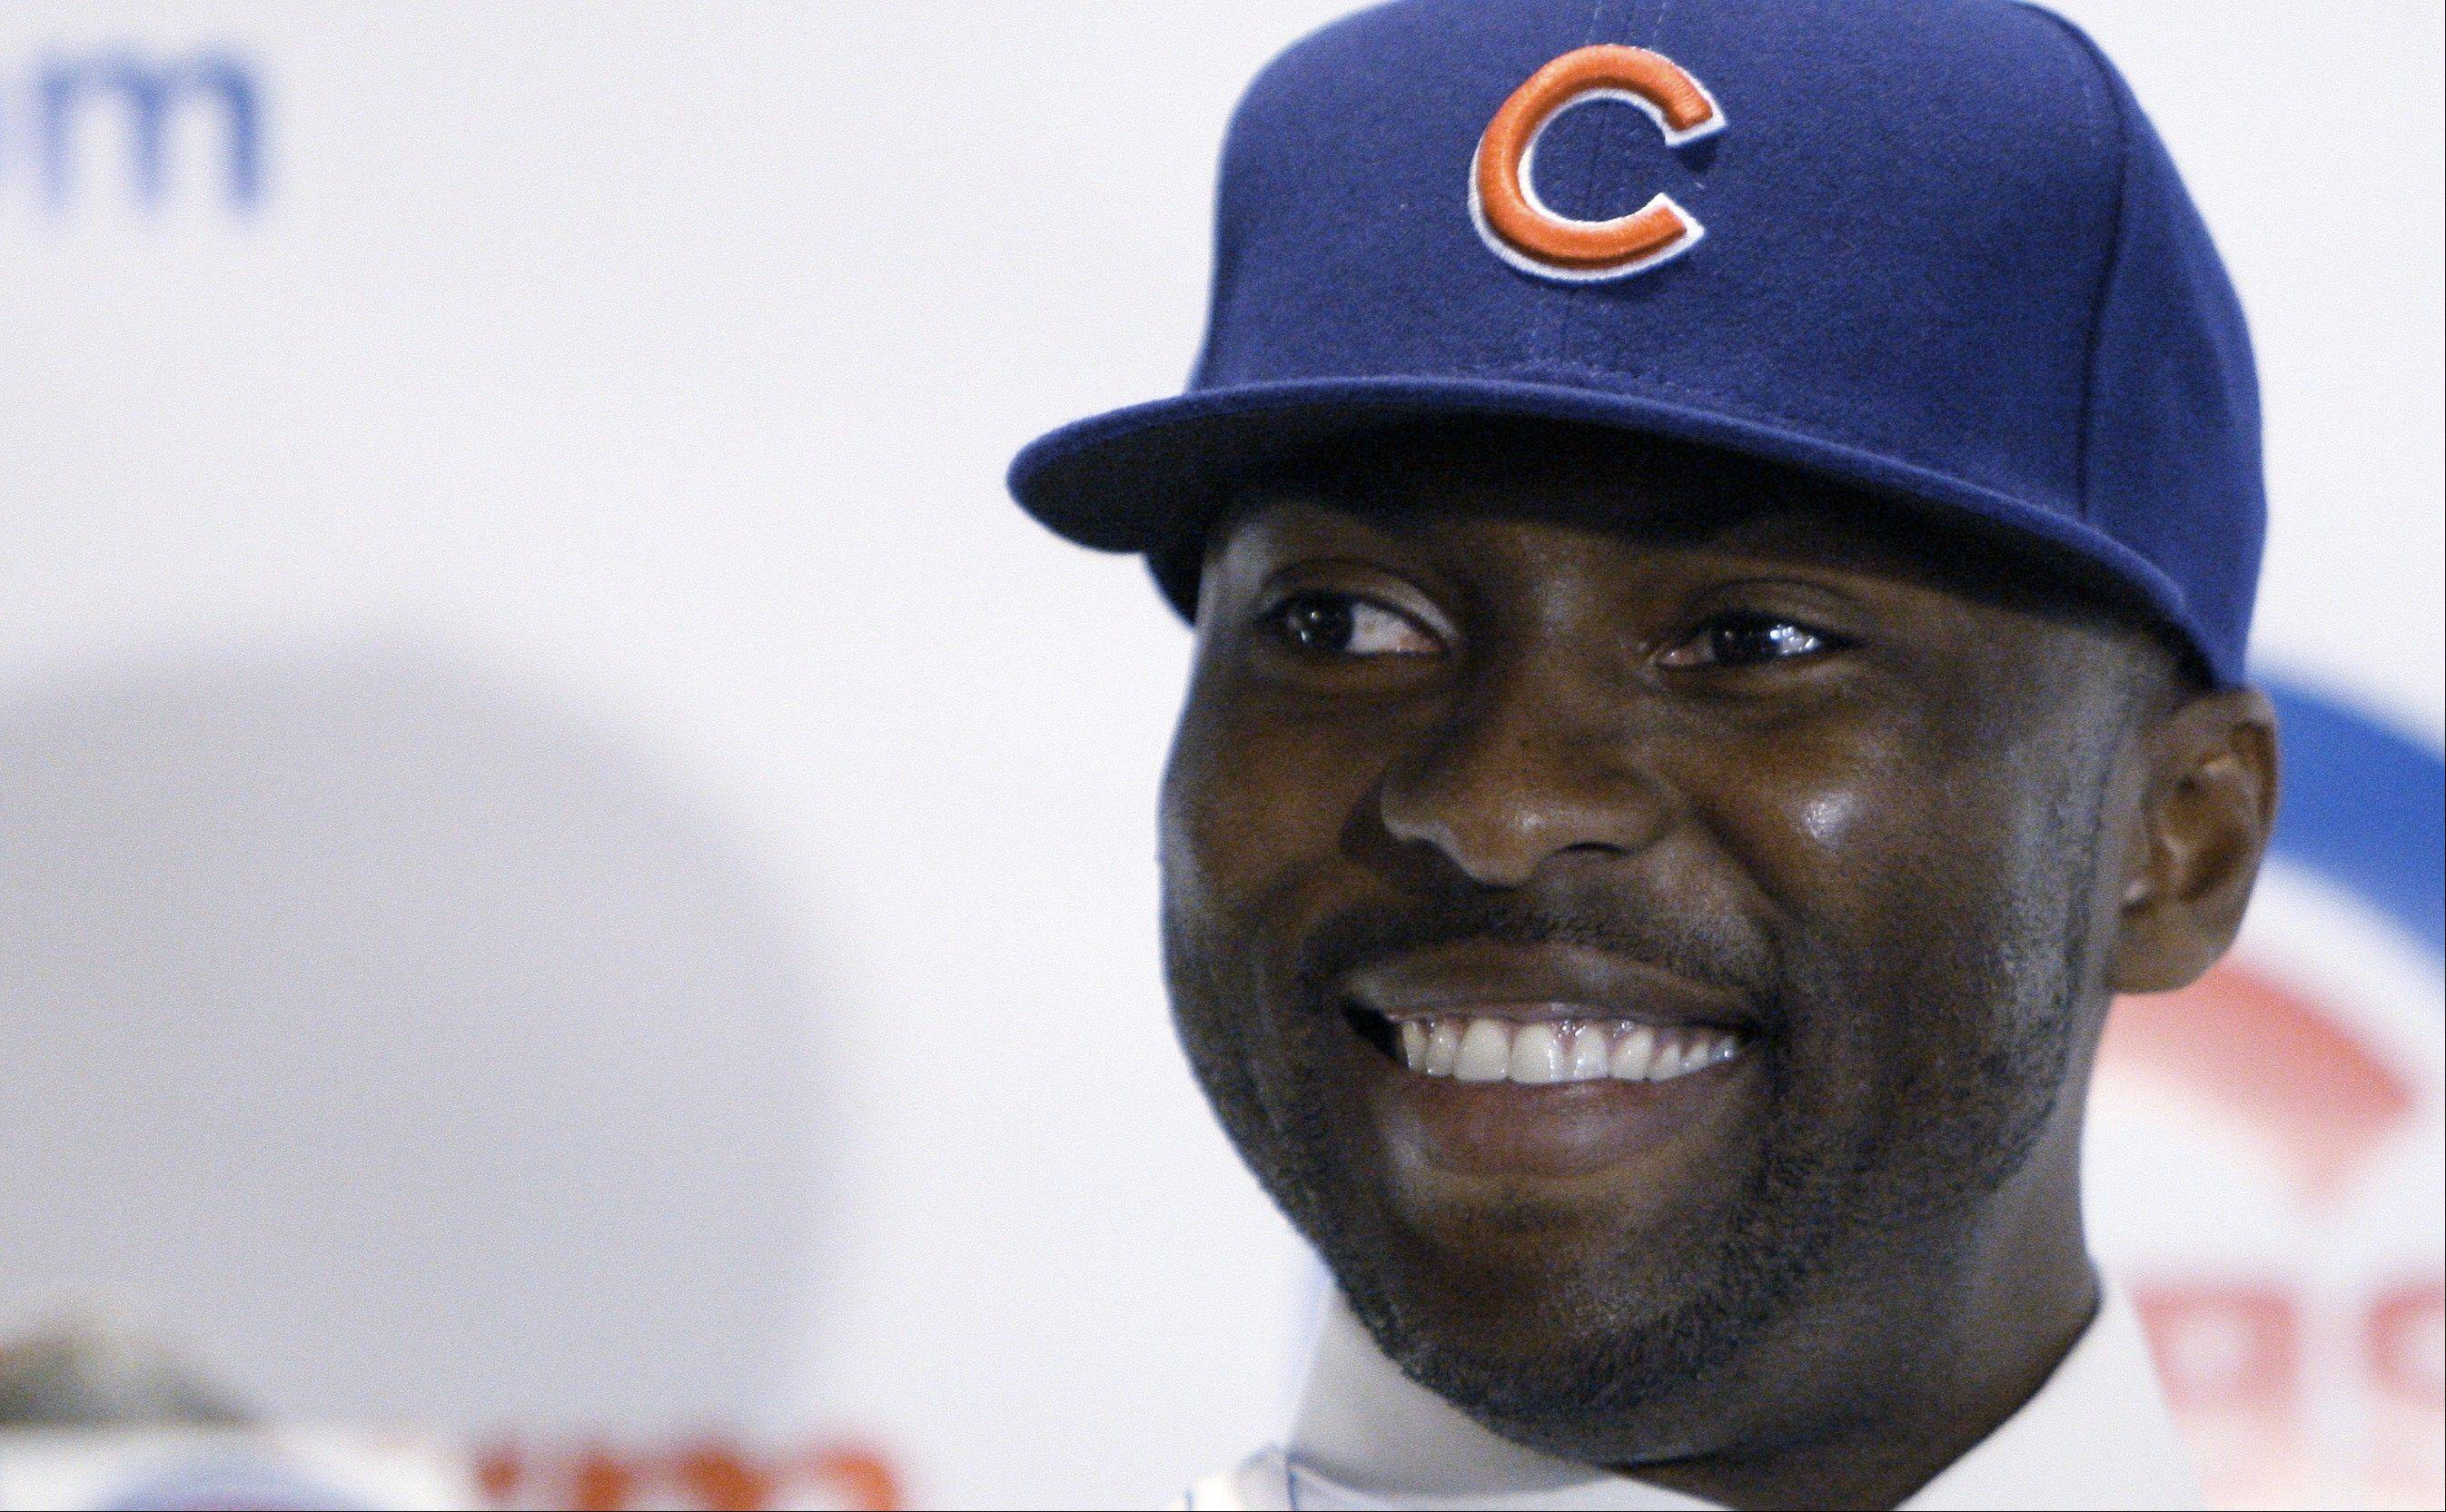 Chicago Cubs outfielder Milton Bradley smiles as he is introduced as the newest member of the team during a news conference Thursday, Jan. 8, 2009 in Chicago. Bradley, formerly with the Texas Rangers, signed a three-year contract with the Cubs.